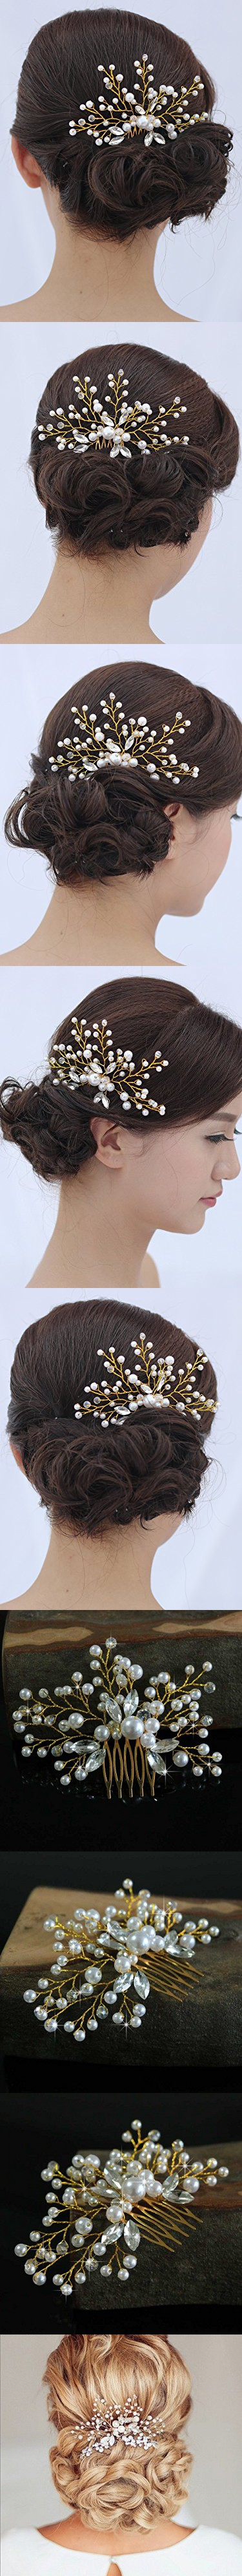 Venusvi Vintage Wedding Hair Combs with Bead and Rhinestones - Bridal Headpiece for Bridesmaids